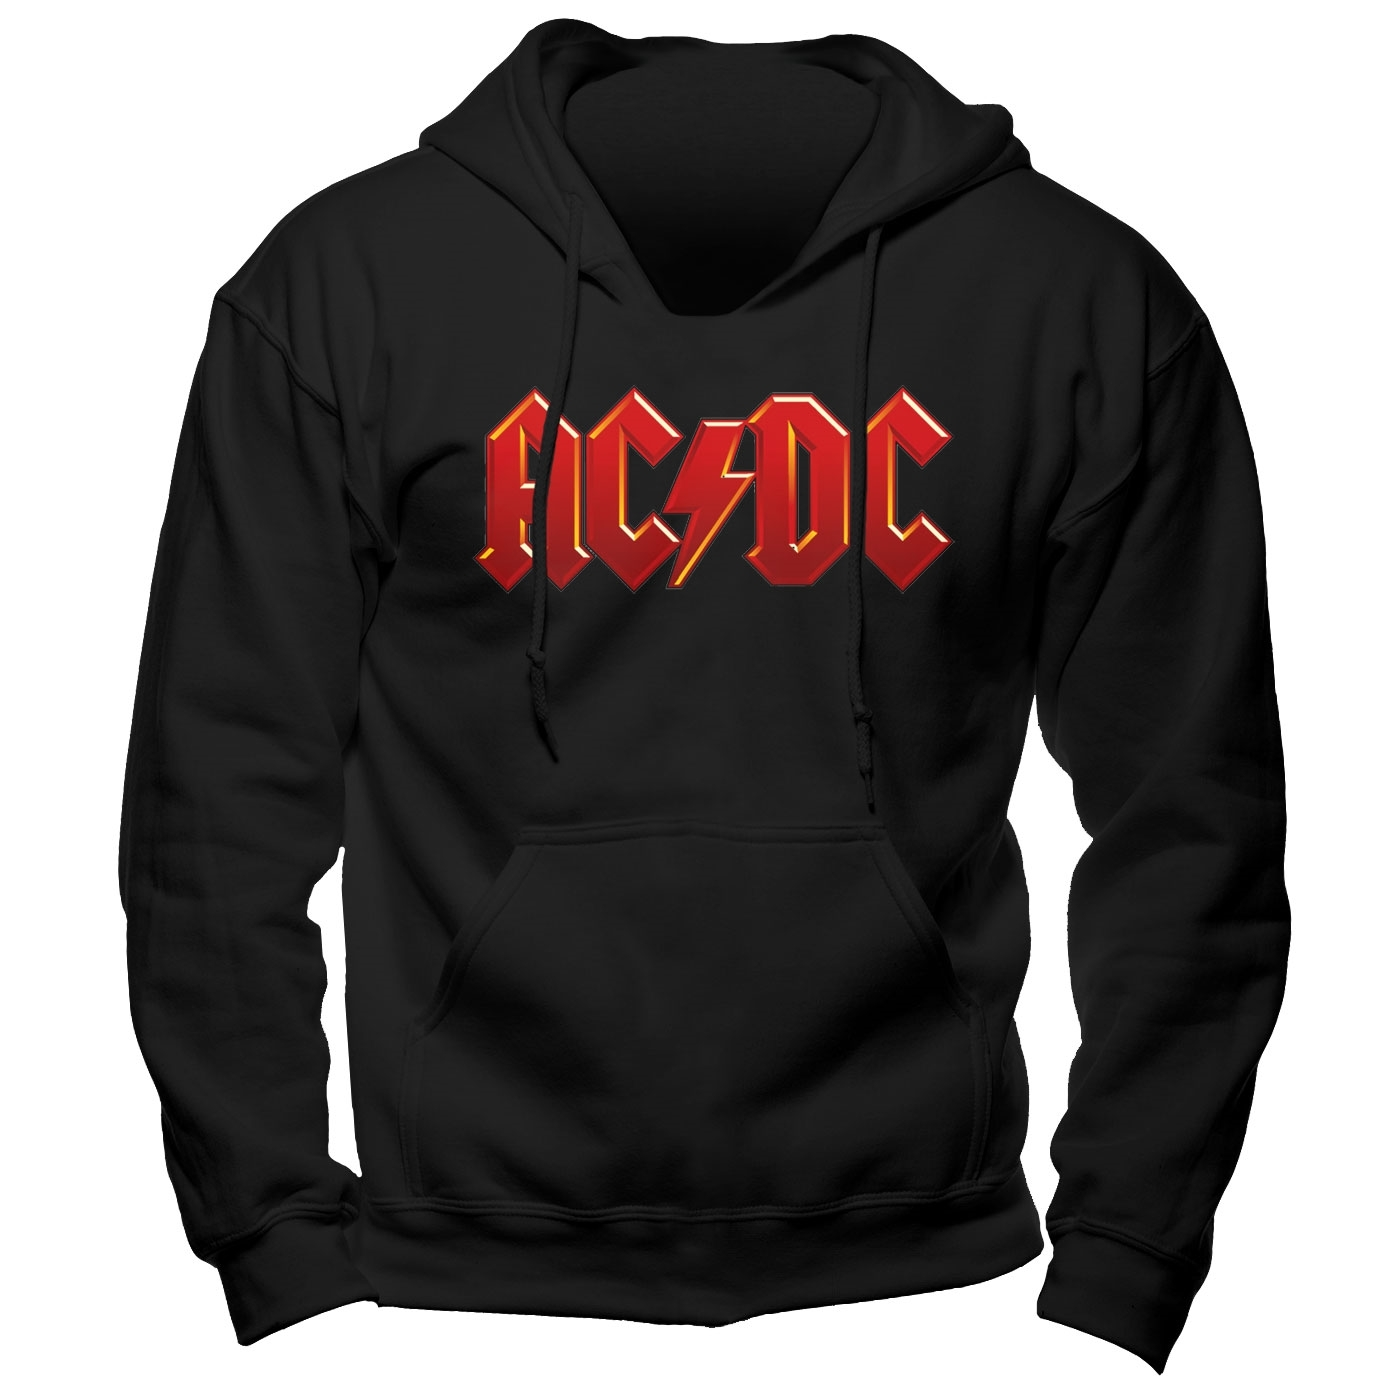 Details about ACDC Logo Hoodie S M L XL XXL Official Black Hooded Sweatshirt Rock Band Hoody